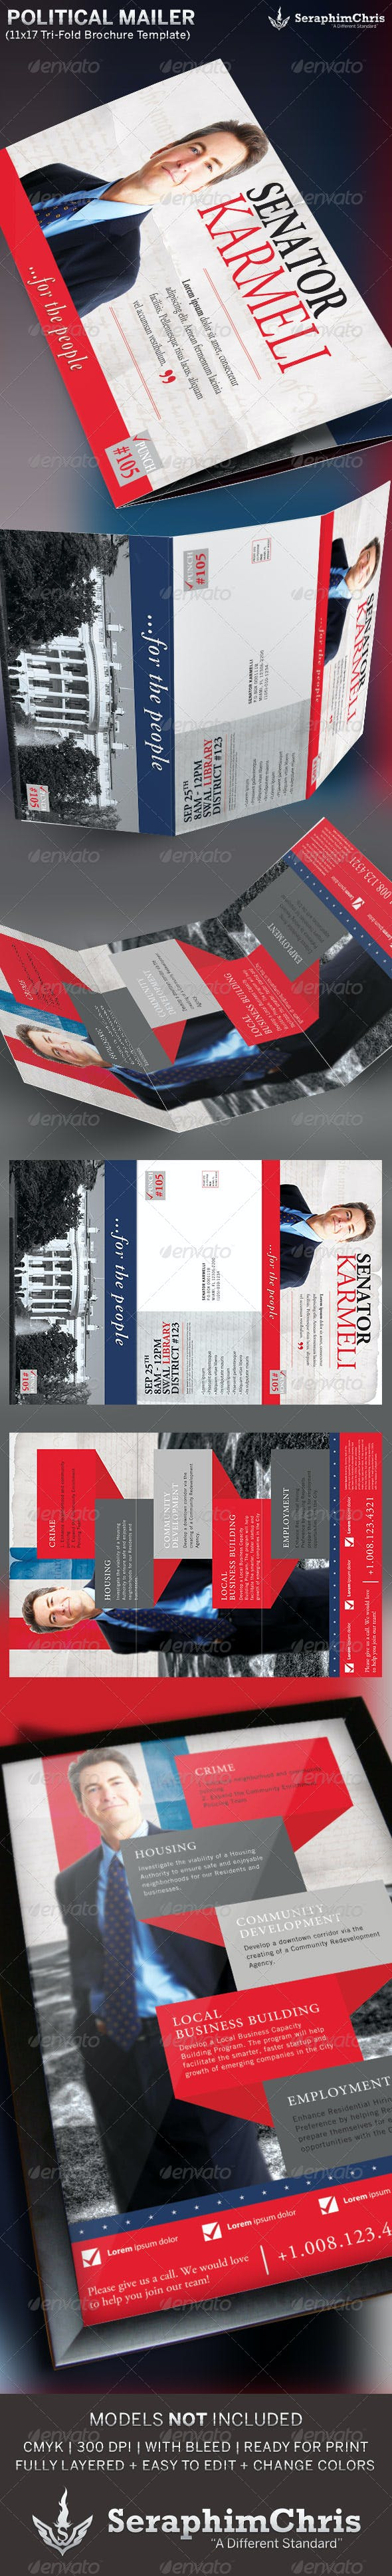 large political tri fold brochure mailer template by seraphimchris